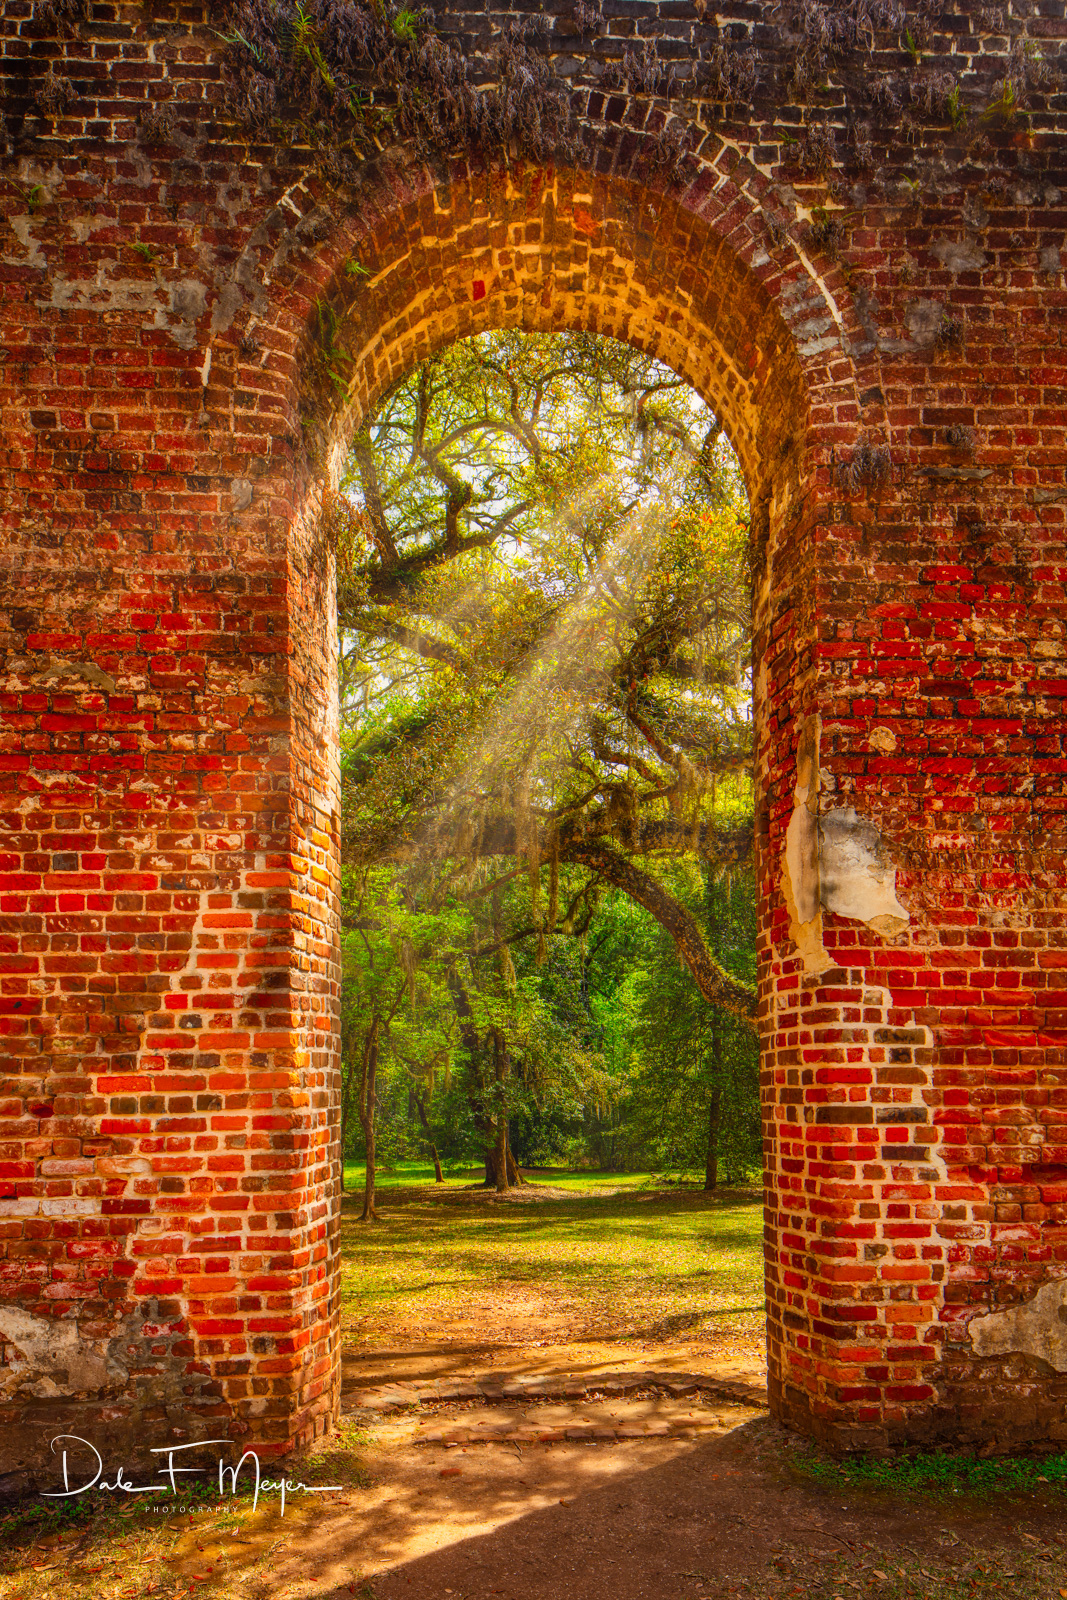 A bright day with sunlight streaming in theMain Door Way of the Old Sheldon Church Ruinsin the heart of the South...